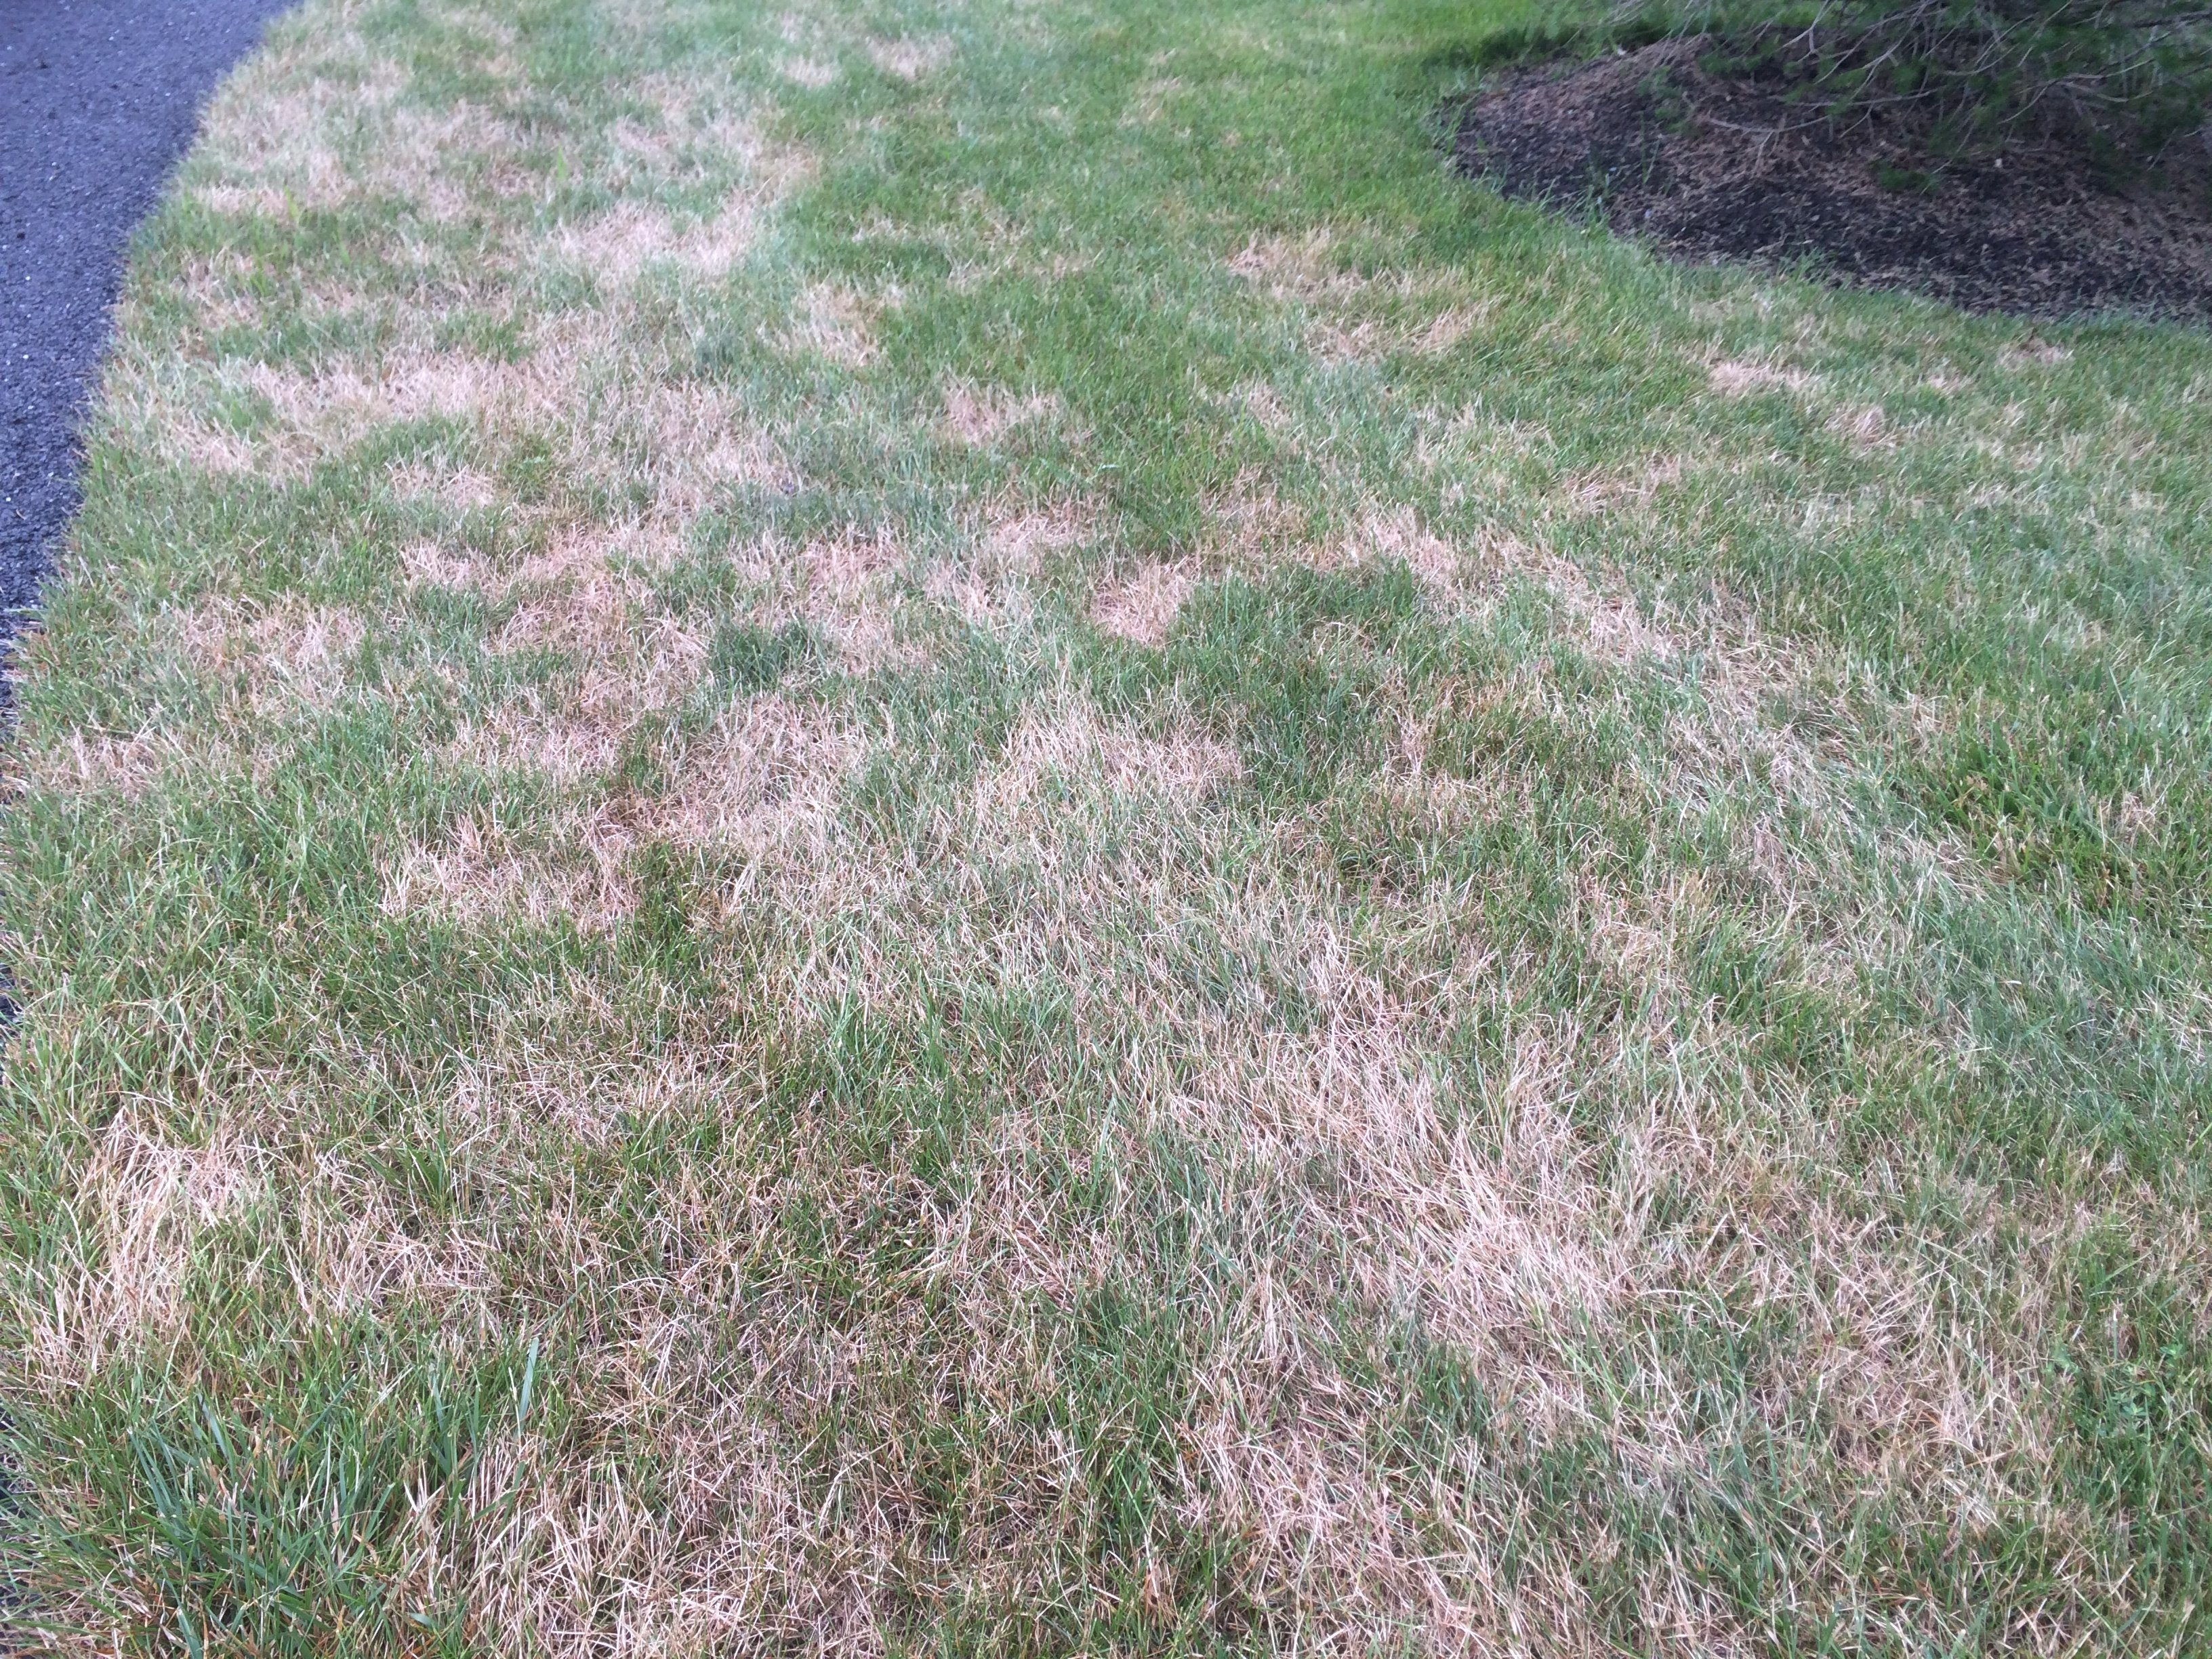 6 Lawn Problems Every Haymarket, Gainesville, or Warrenton, VA Homeowner Should Be Aware Of